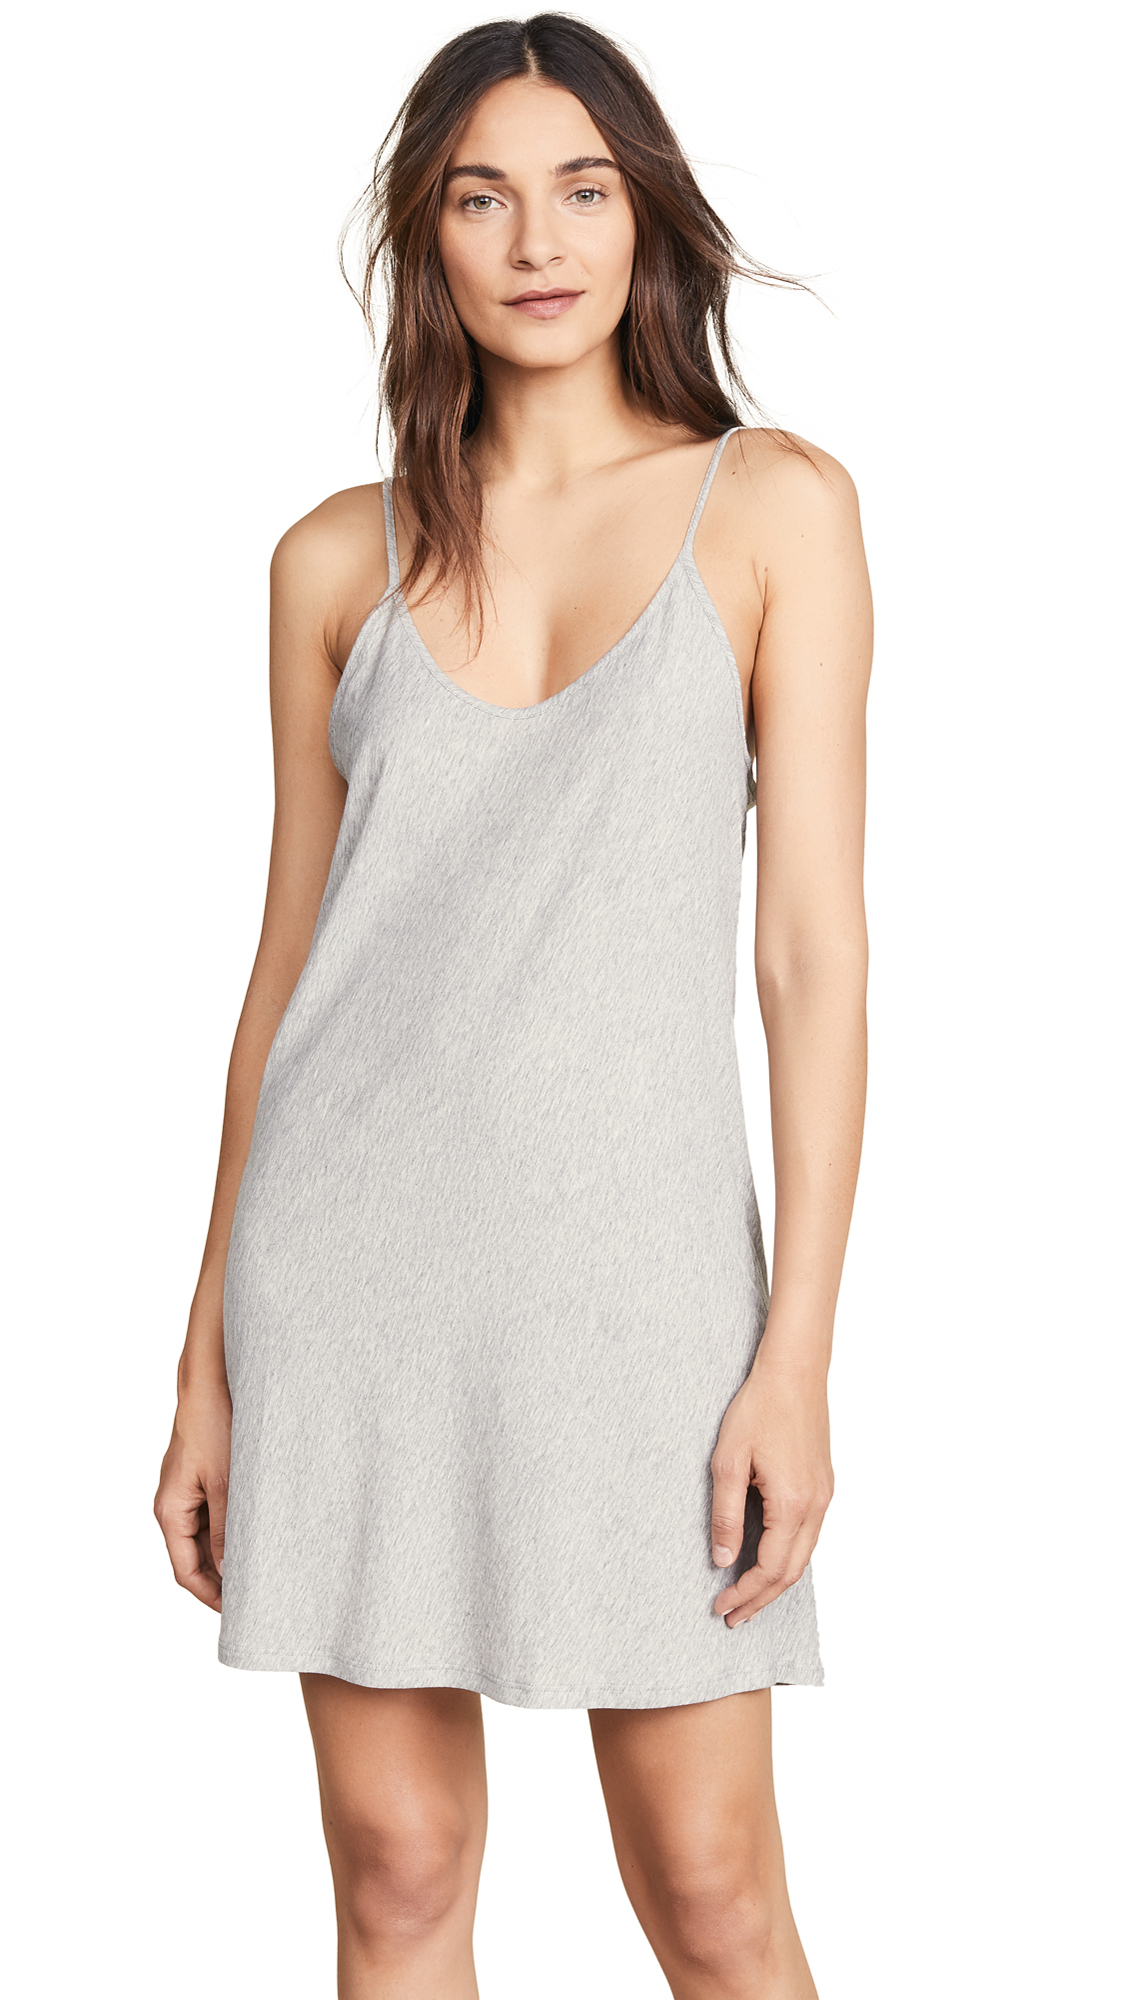 Skin Sexy Slip In Heather Grey